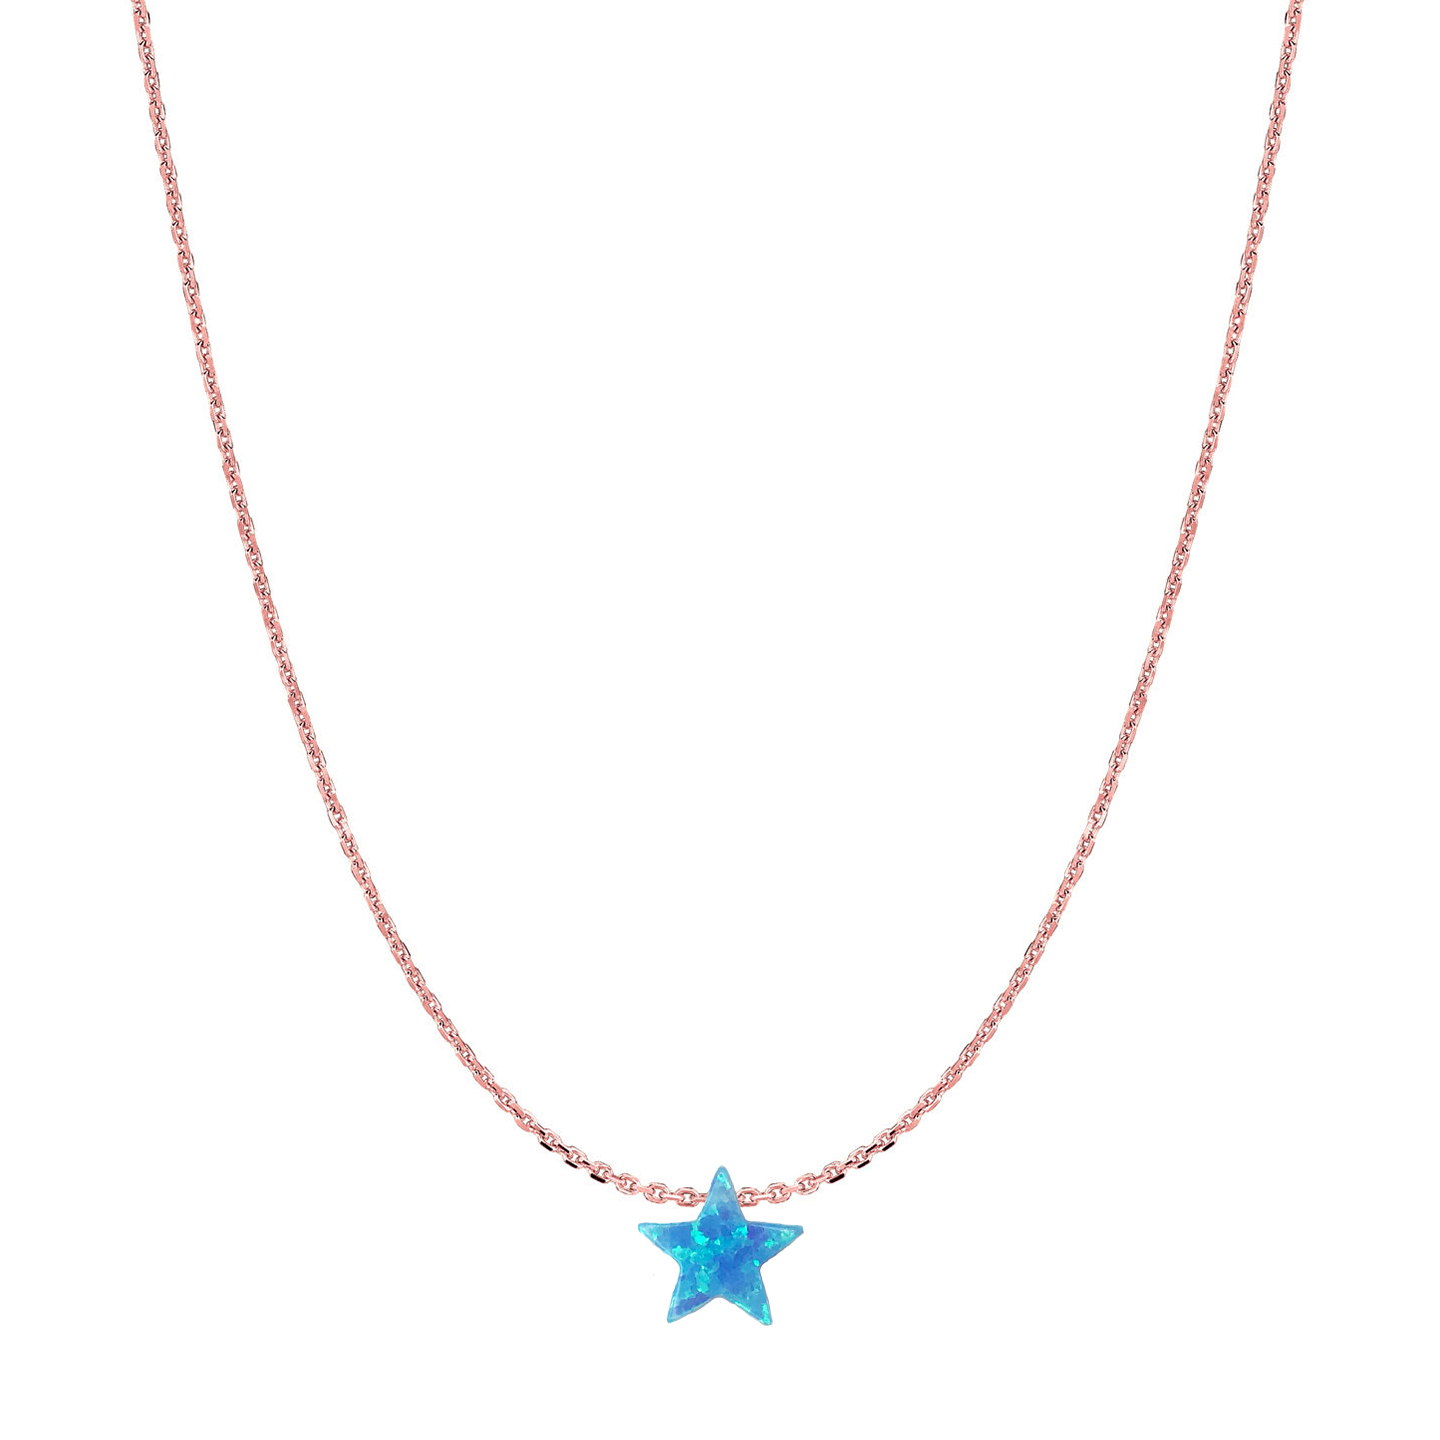 14 Karat Gold Bright Blue Opal Twinkling Star Necklace